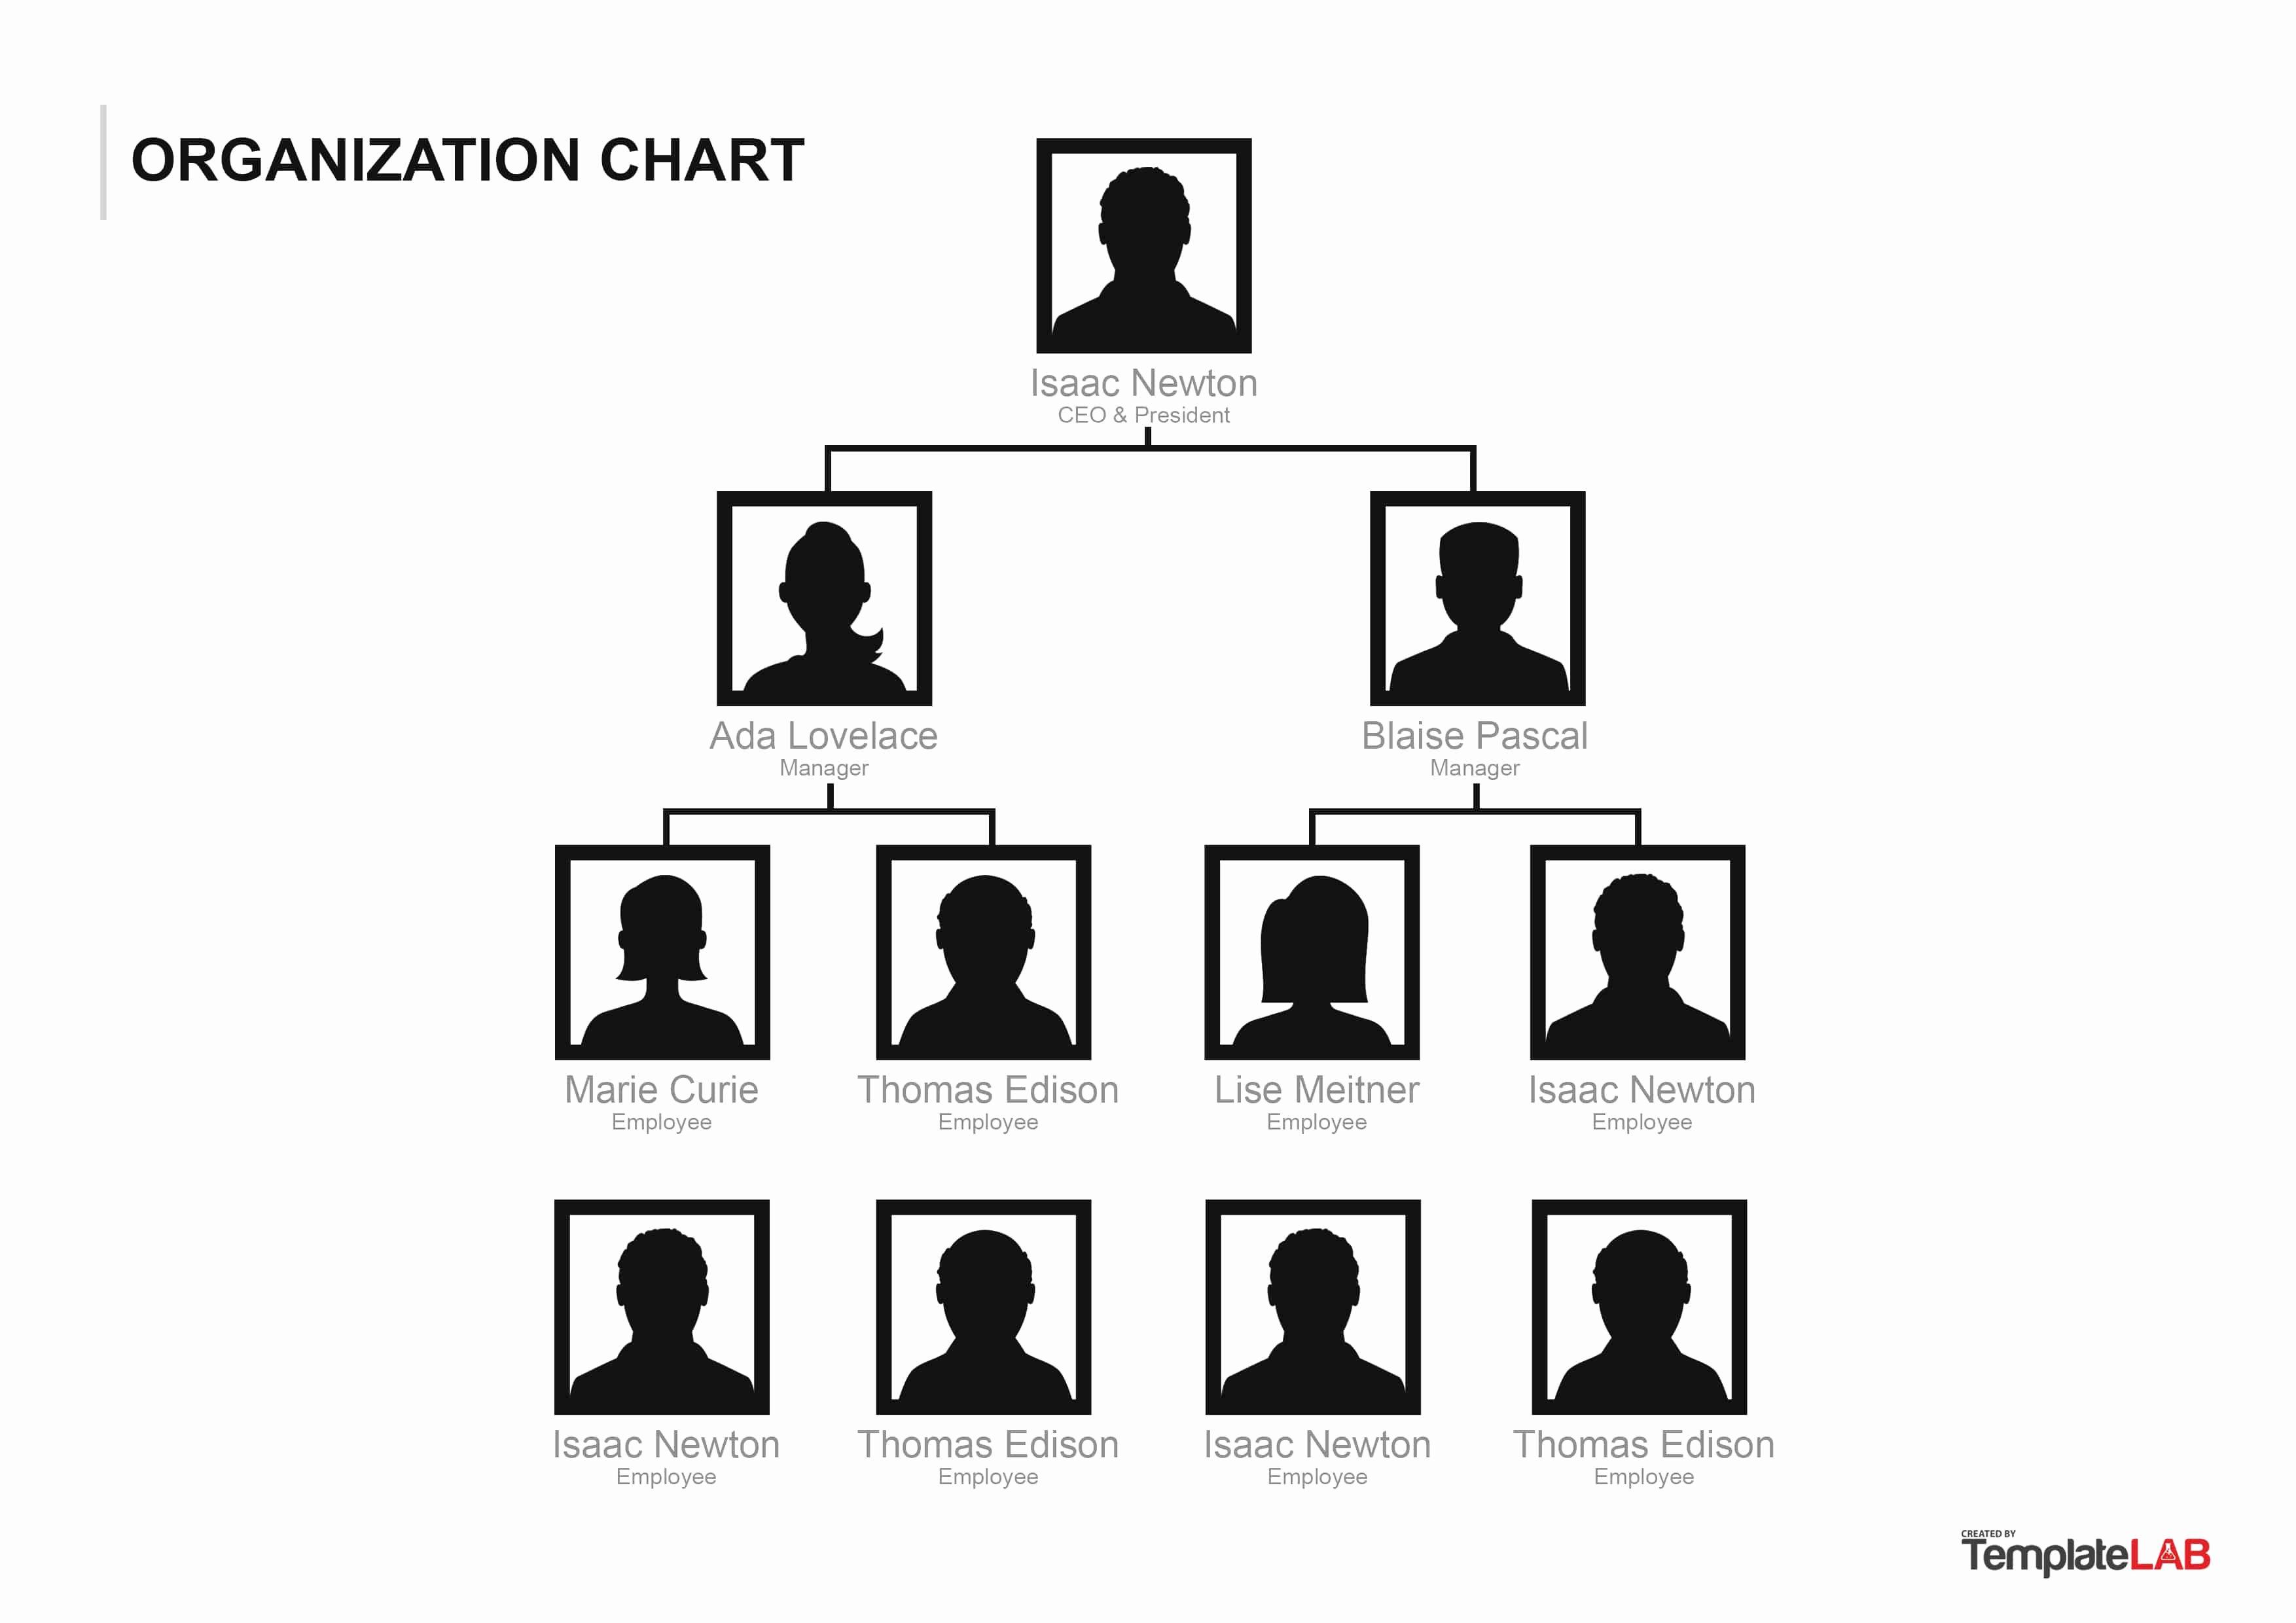 Organizational Chart Template Free Best Of 40 organizational Chart Templates Word Excel Powerpoint